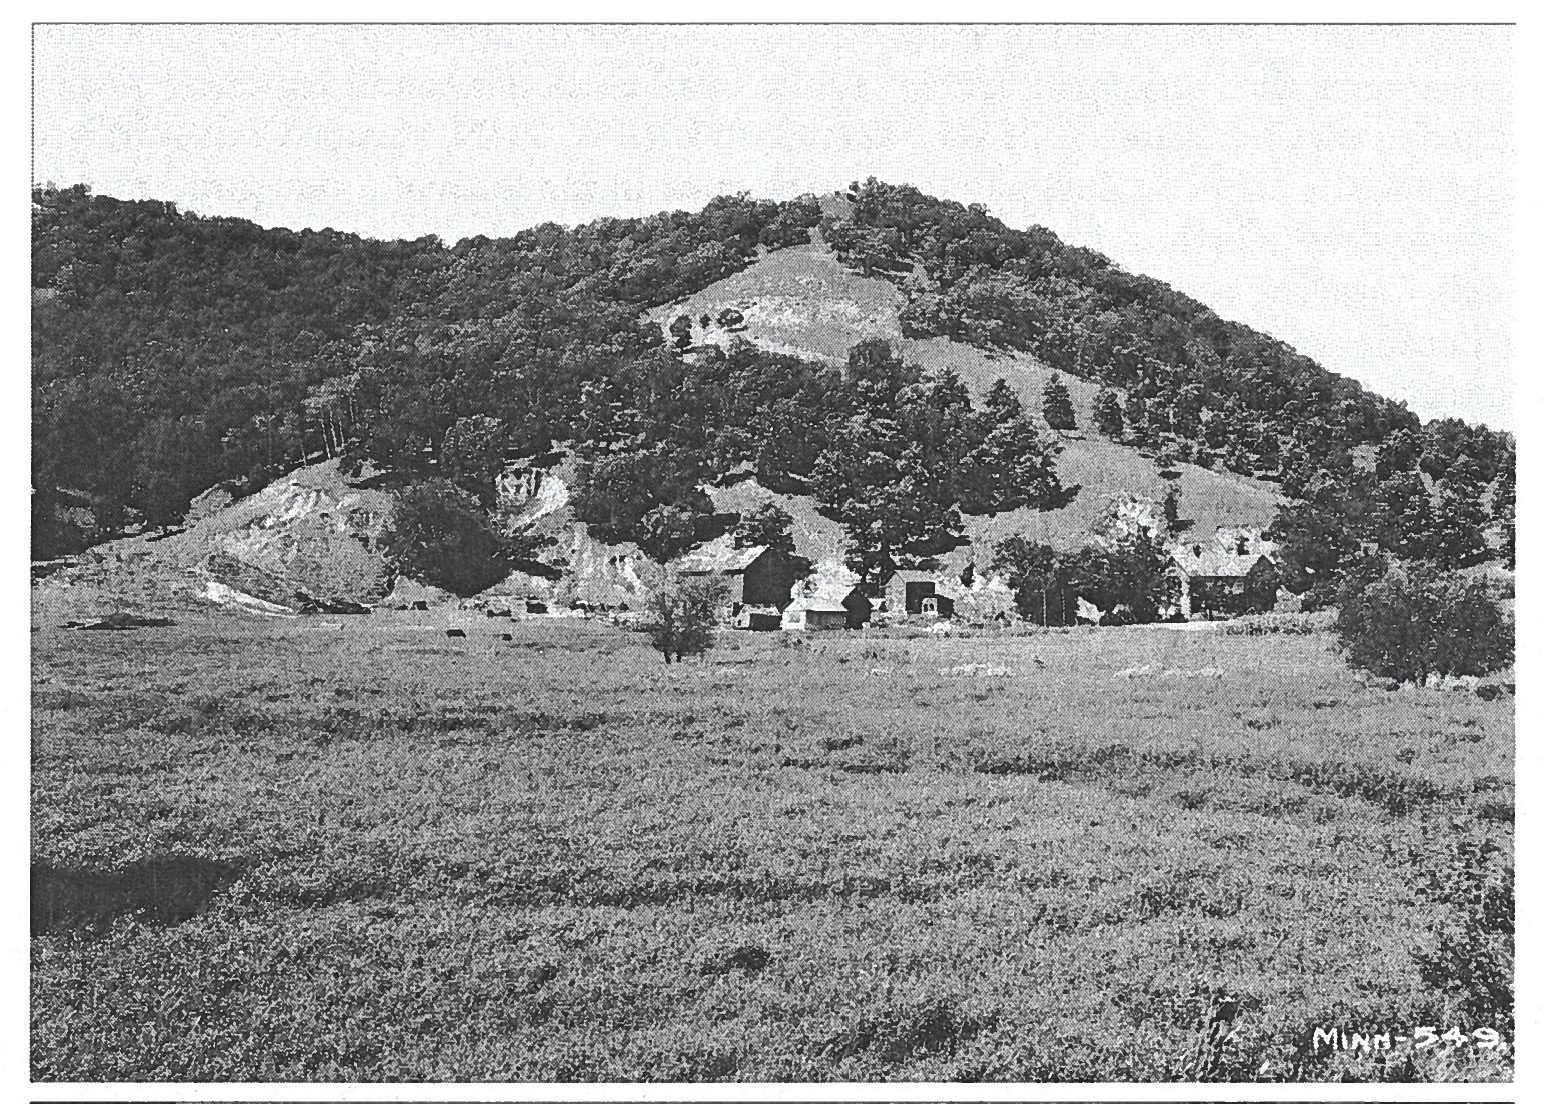 A farm in the Whitewater Valley with a field of what is likely invasive reed canarygrass in the foreground. Image courtesy of Stanley W. Trimble.